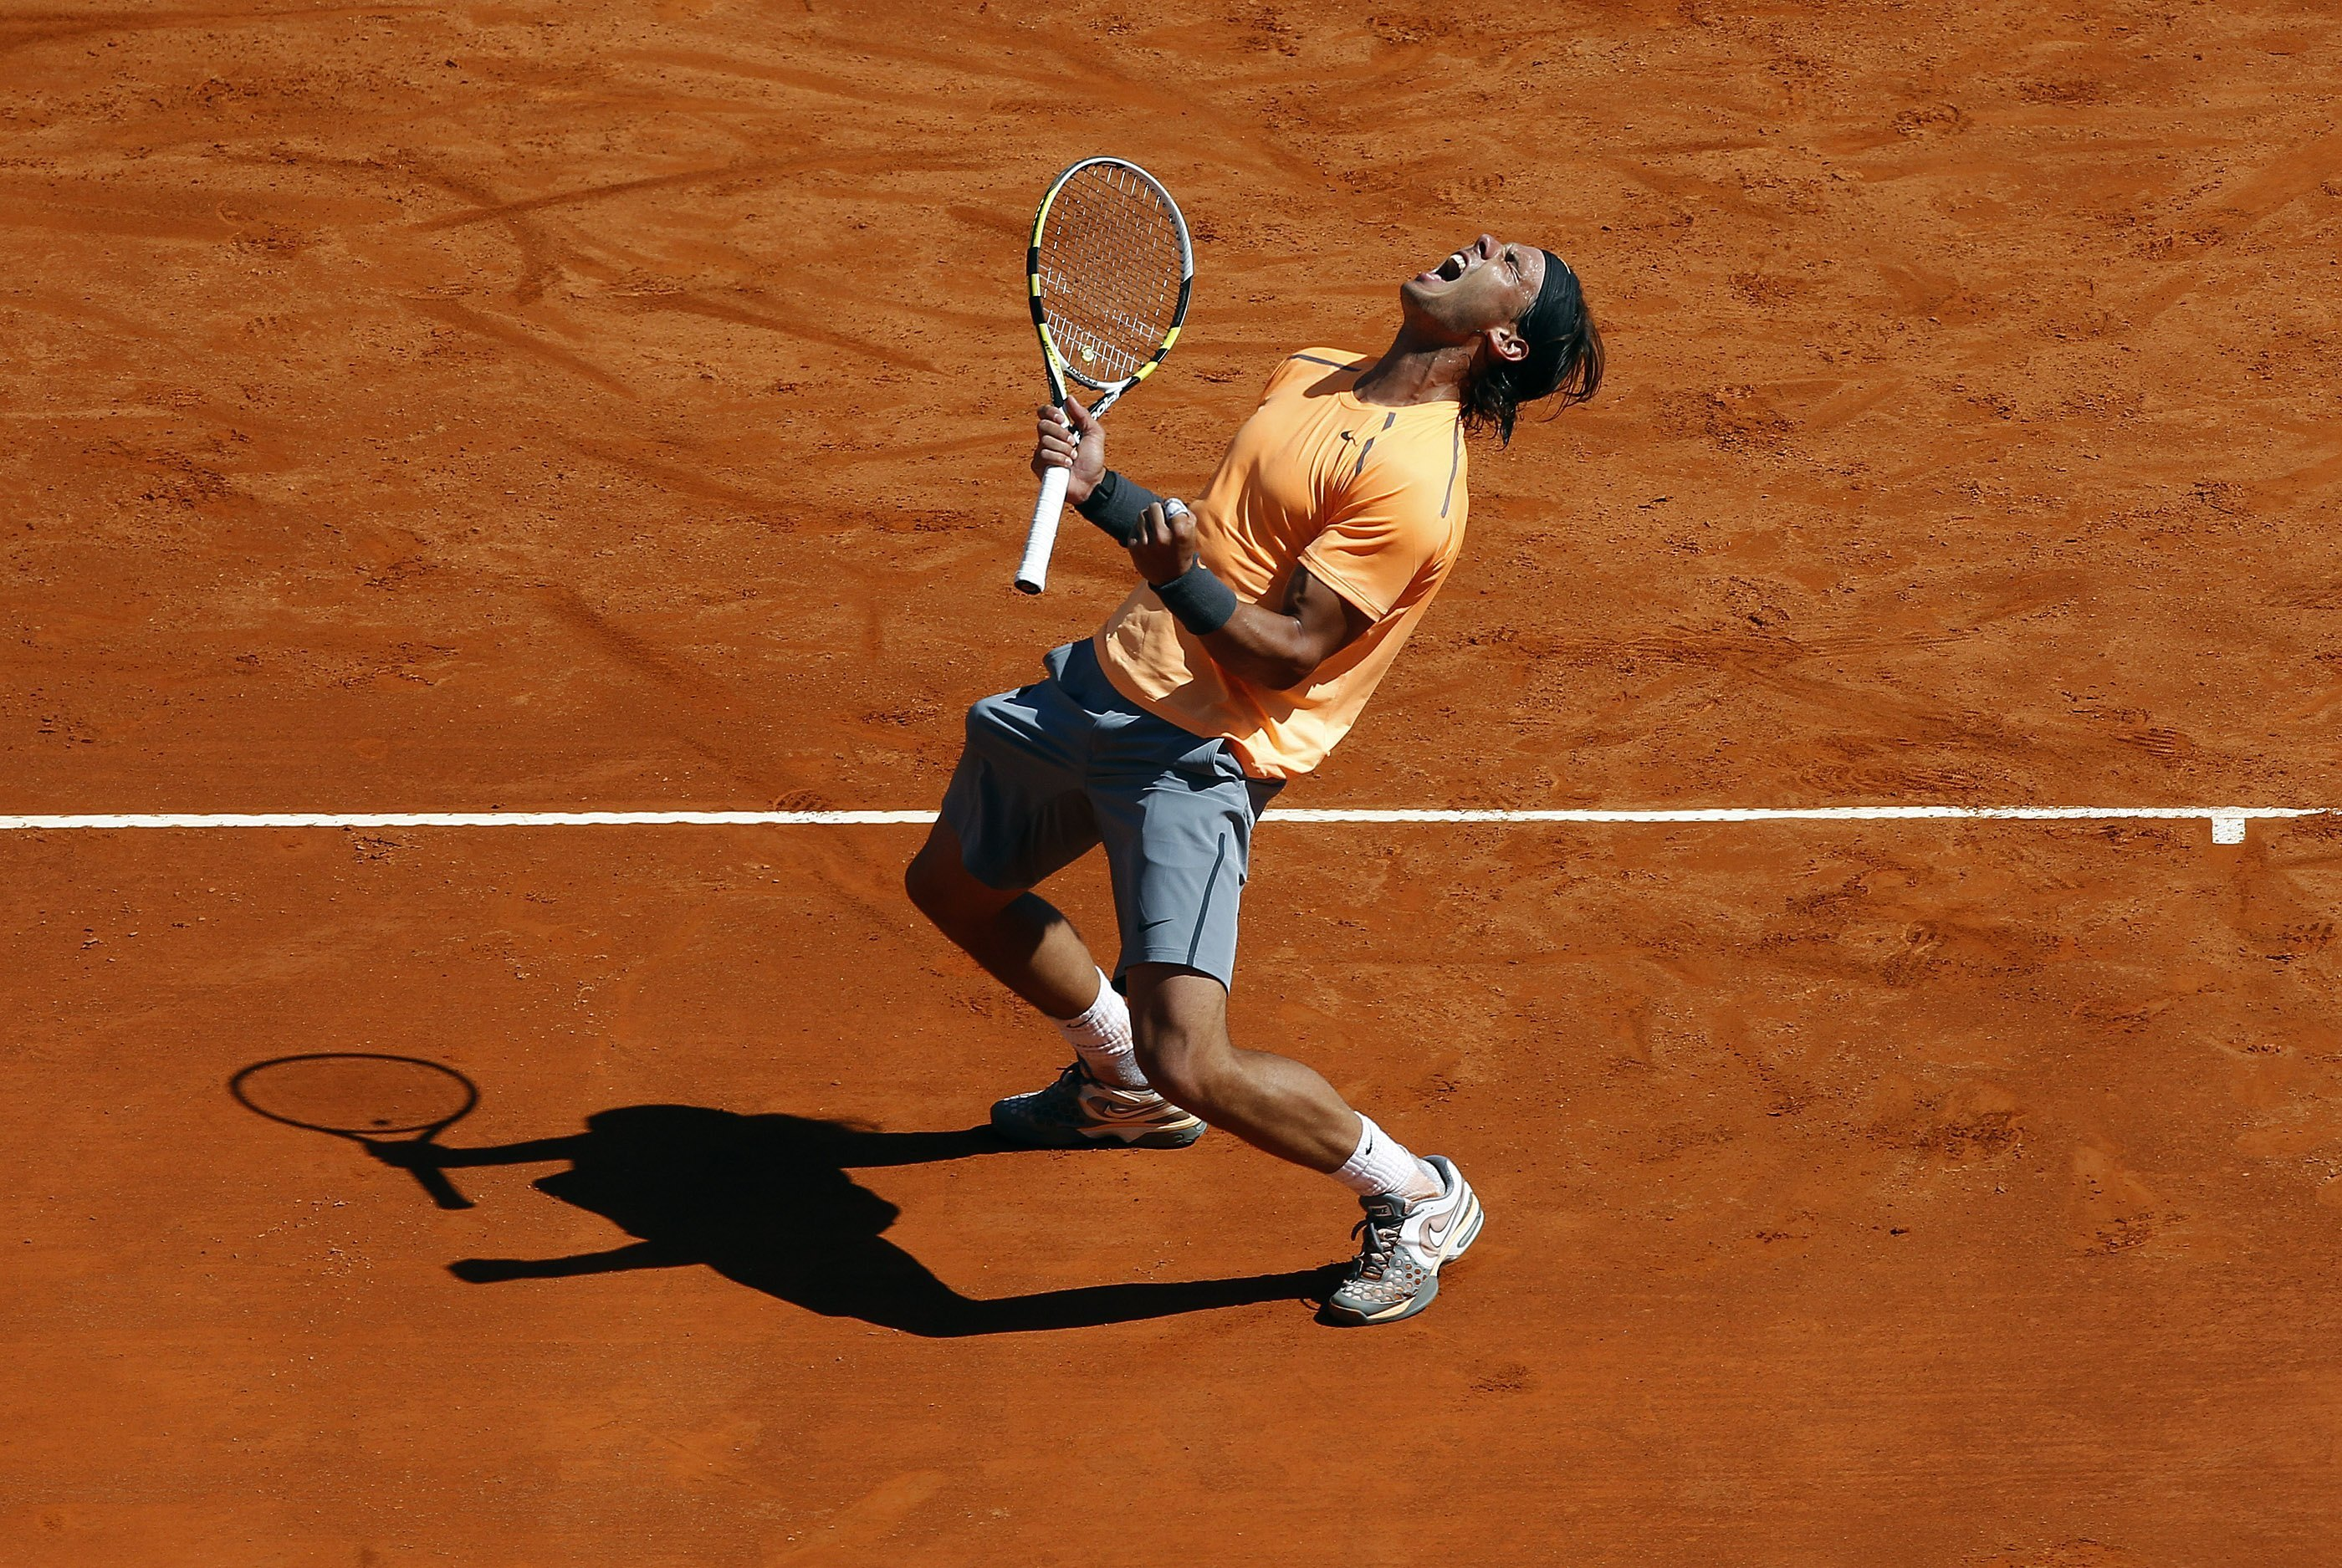 Nadal Hd: Rafael Nadal Wallpapers, Pictures, Images